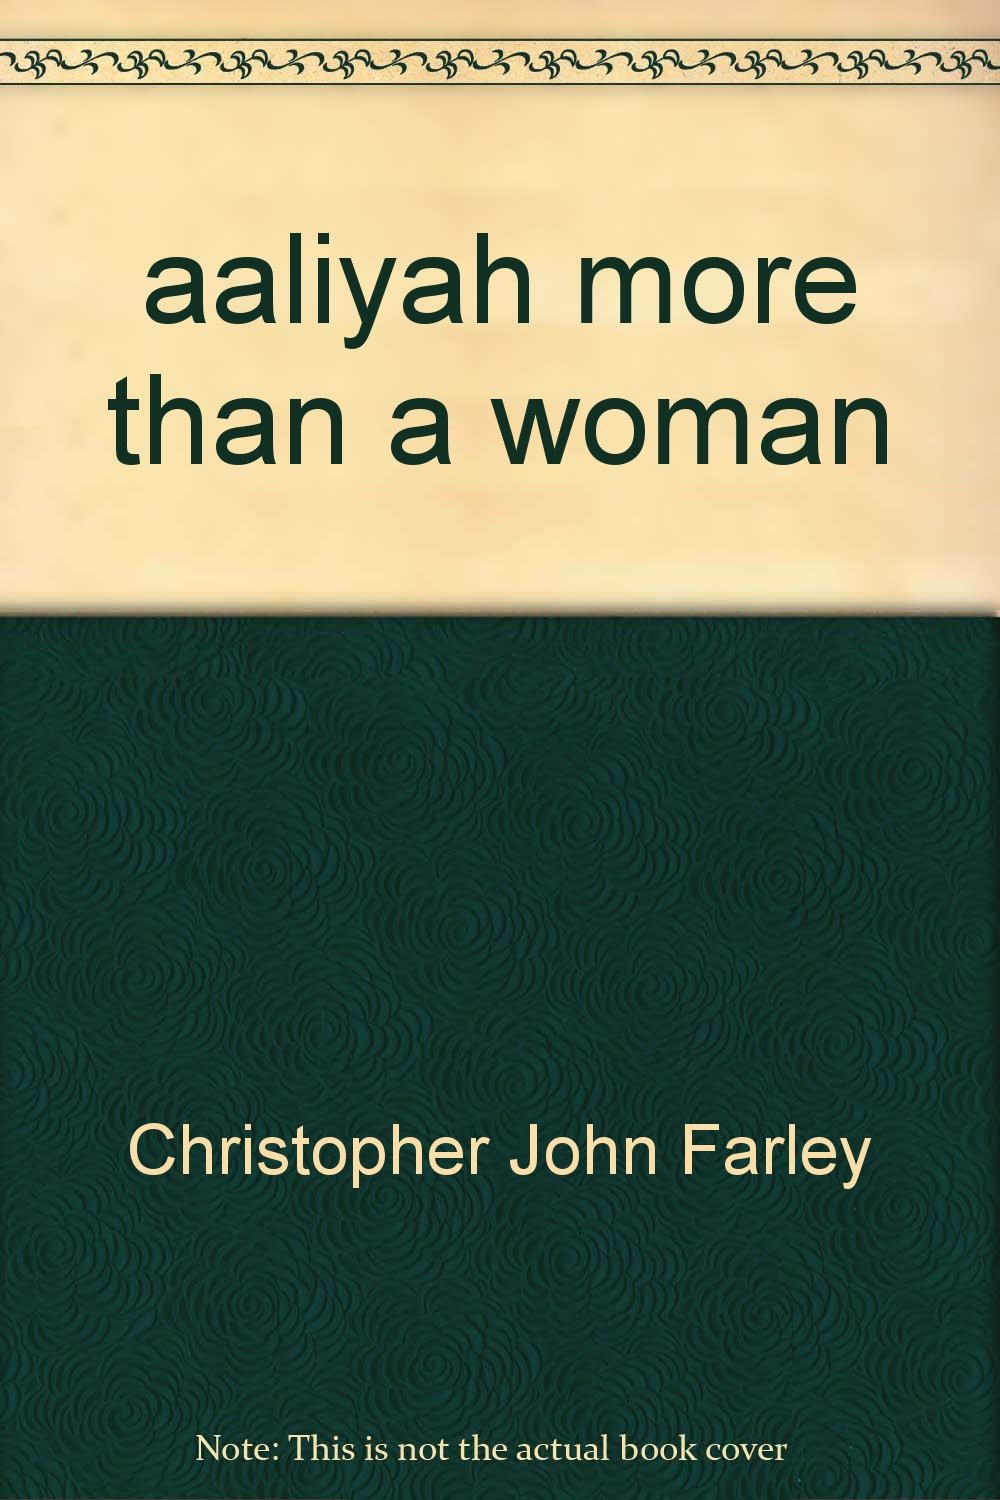 aaliyah more woman Christopher Farley product image